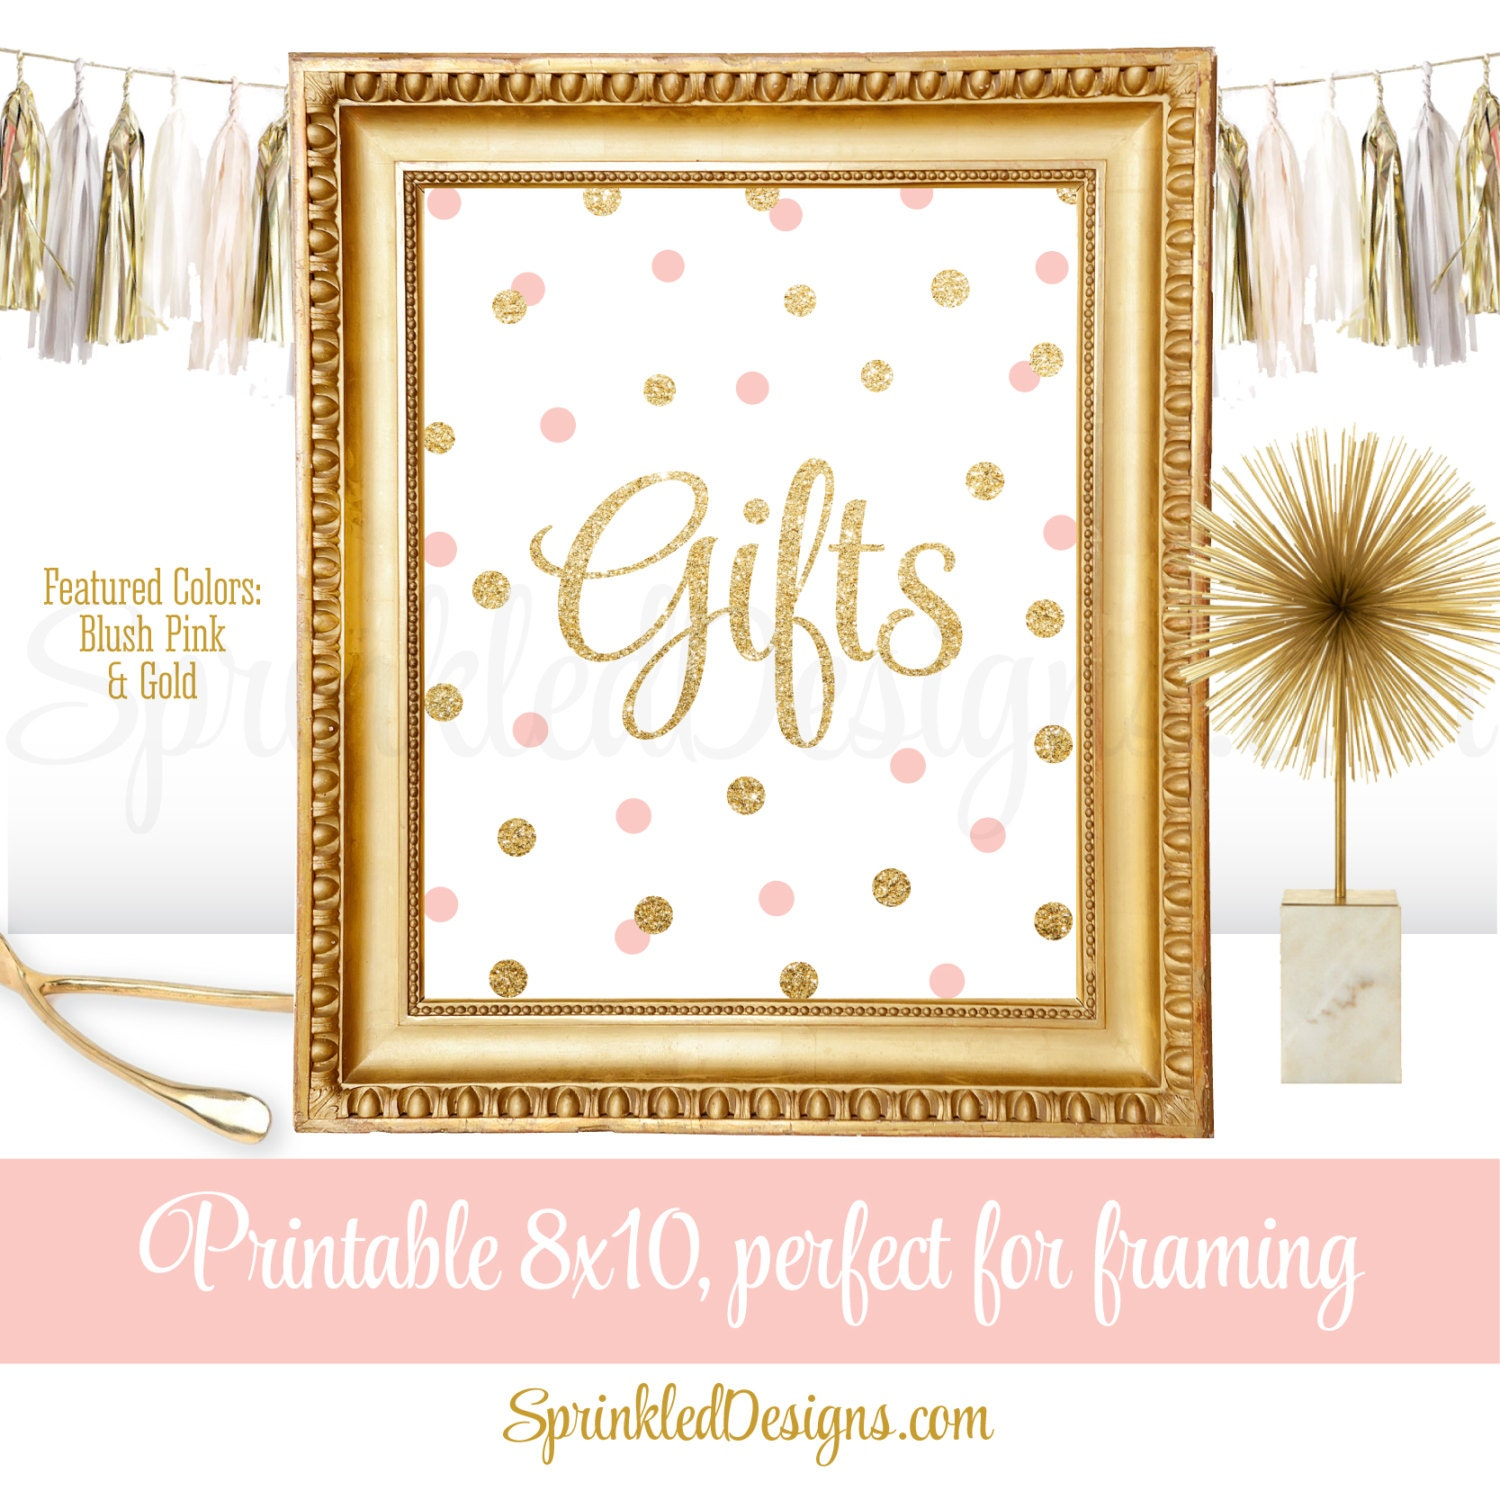 Table Gifts For Weddings: Gift Table Party Signs For Wedding Birthday Or Baby Shower